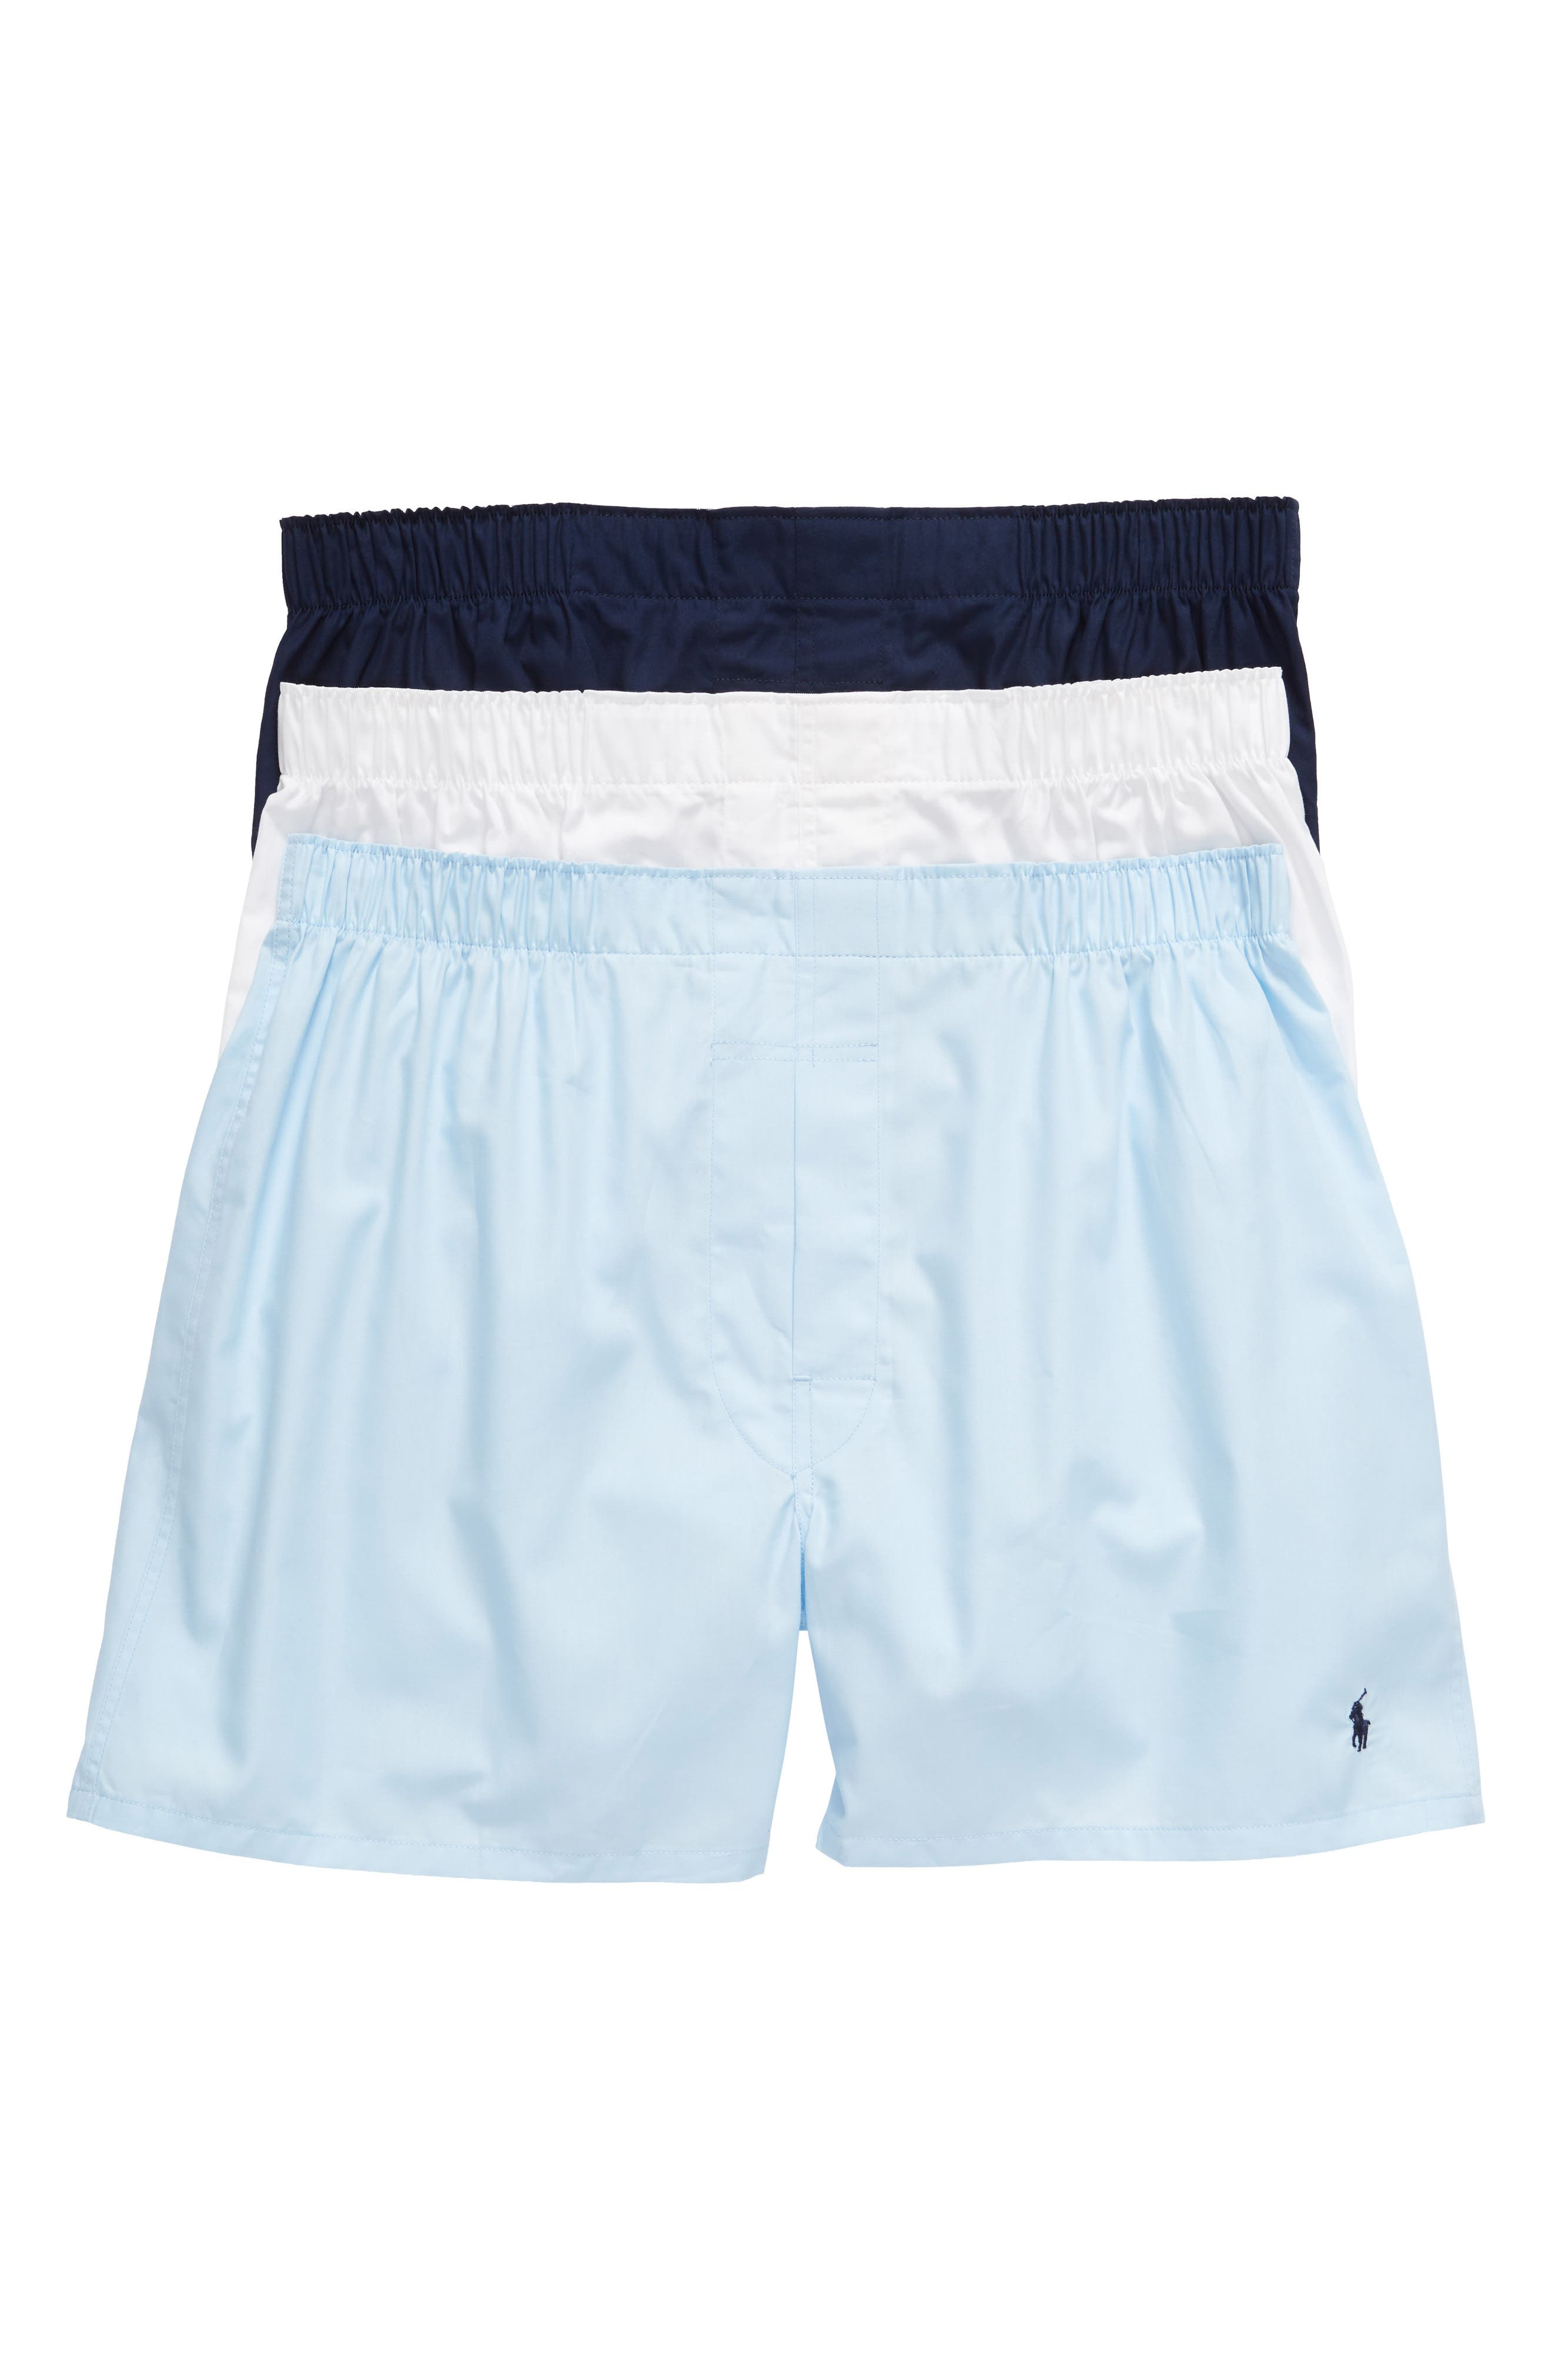 3-Pack Cotton Boxers,                             Main thumbnail 1, color,                             White/ Light Blue/ Cruise Navy